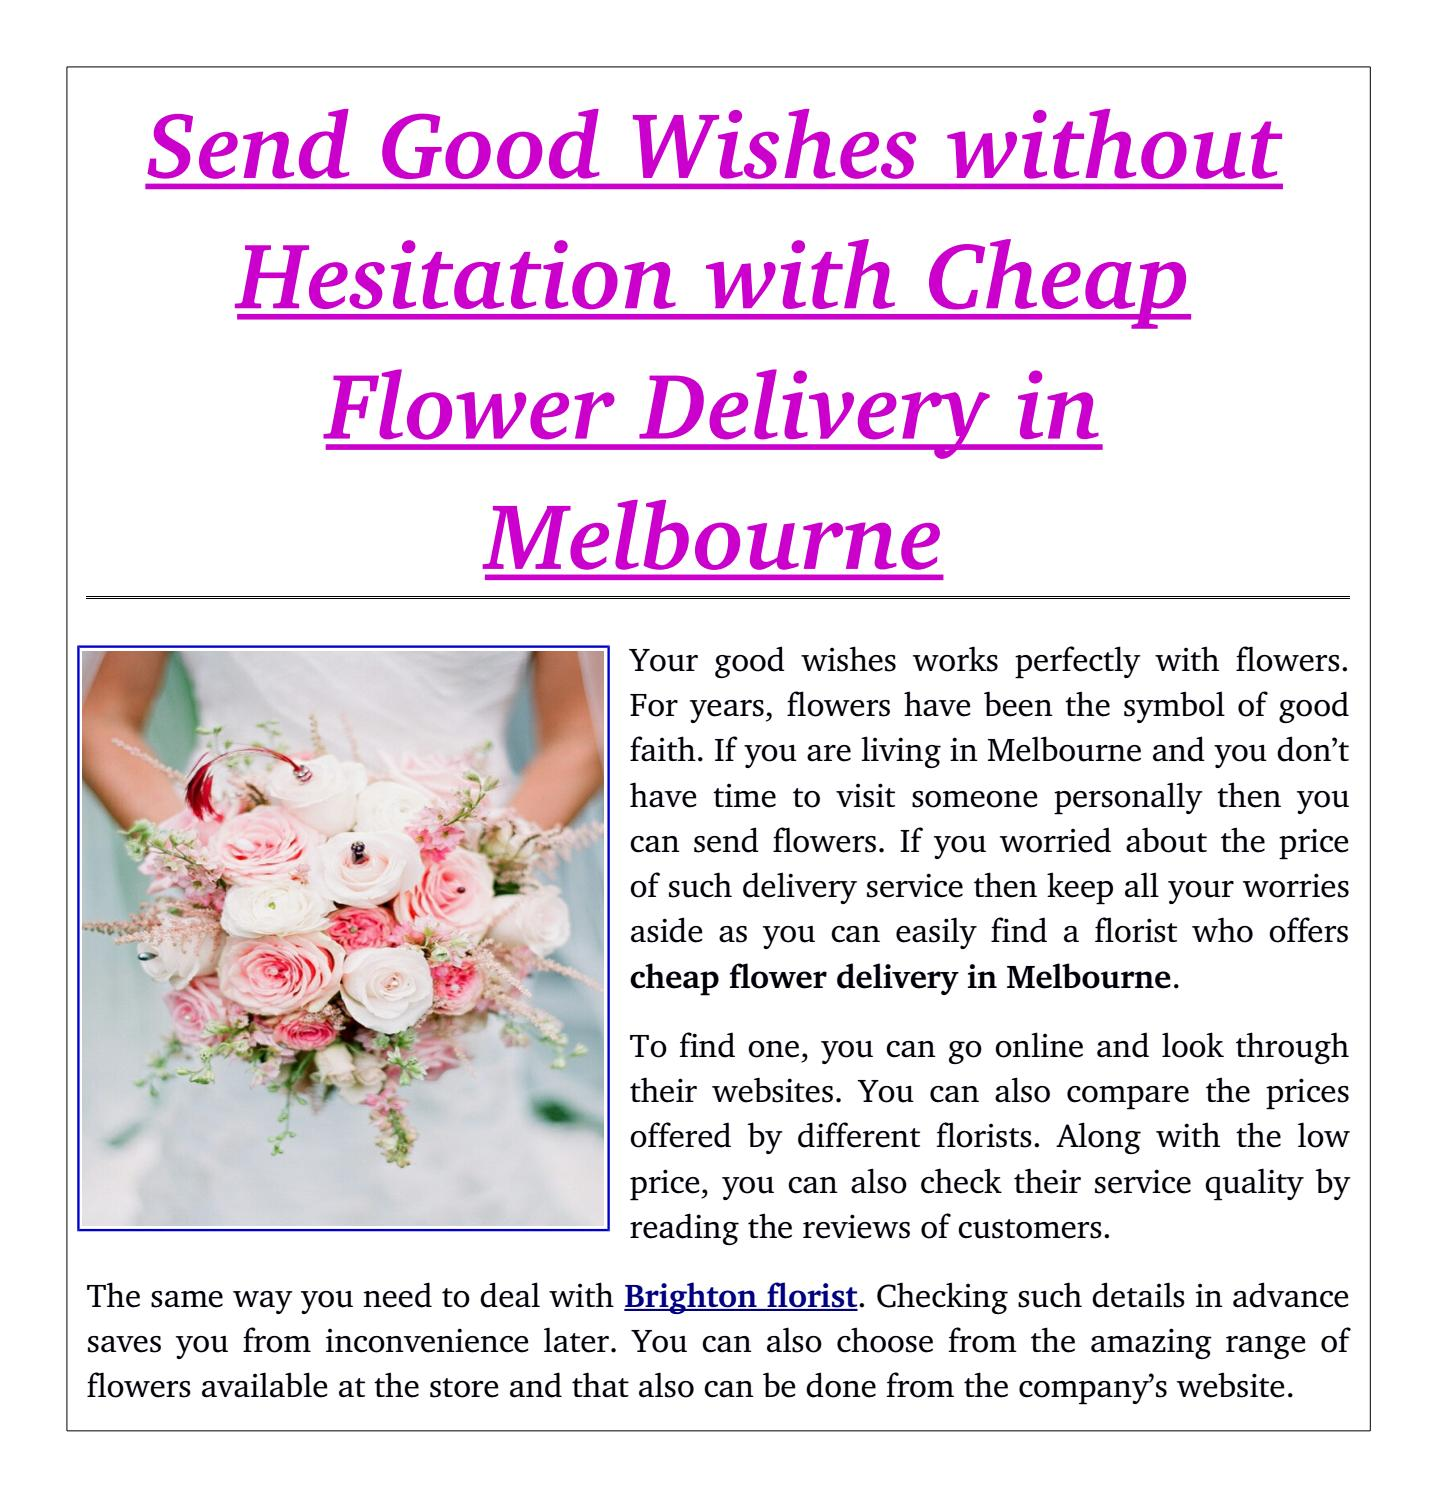 Send good wishes without hesitation with cheap flower delivery in send good wishes without hesitation with cheap flower delivery in melbourne by flower shop melbourne issuu izmirmasajfo Gallery